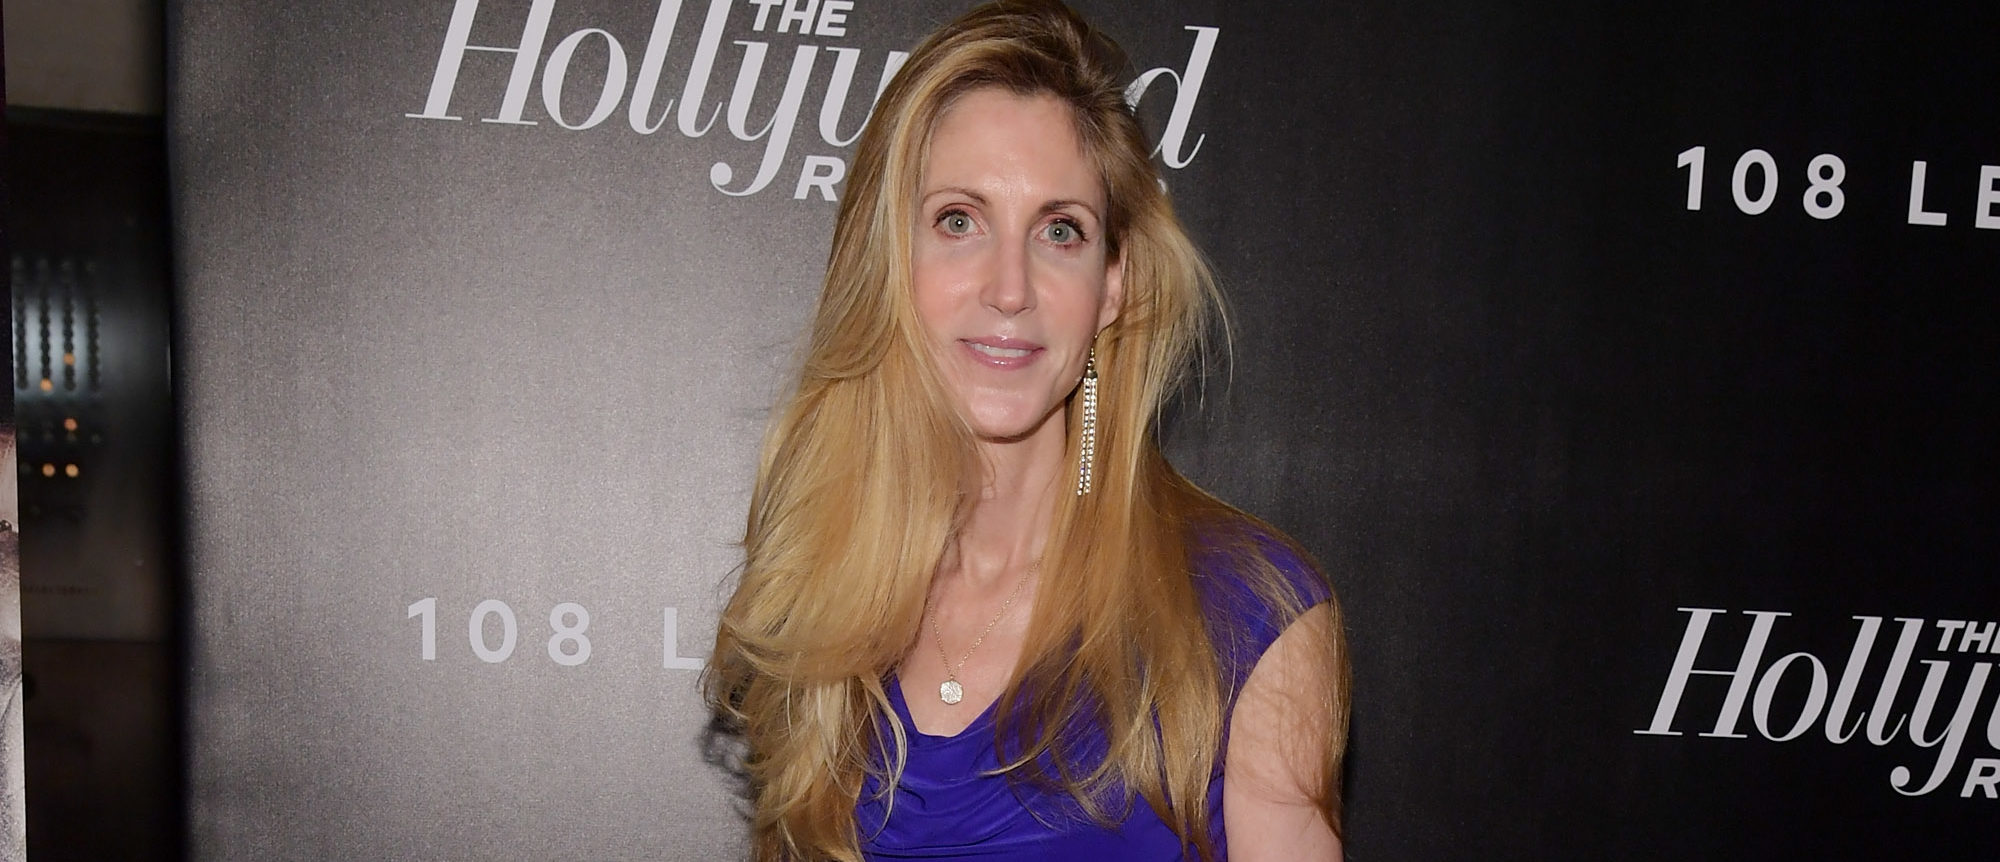 Ann Coulter attends The Hollywood Reporter's Most Powerful People In Media 2018 at The Pool on April 12, 2018 in New York City. (Photo by Ben Gabbe/Getty Images)